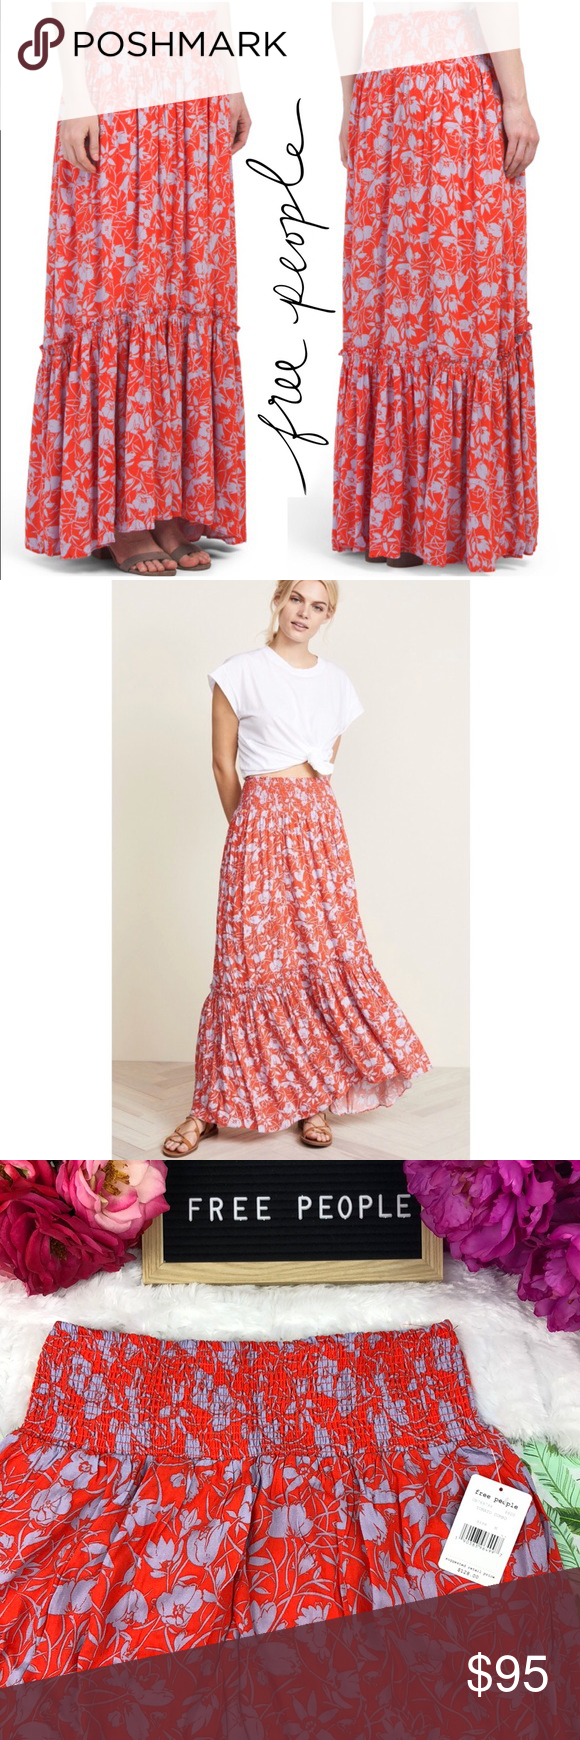 4a4e6d7de7 Free People} Floral Way Of The Wind Maxi Skirt NWT in 2018 | My Posh ...